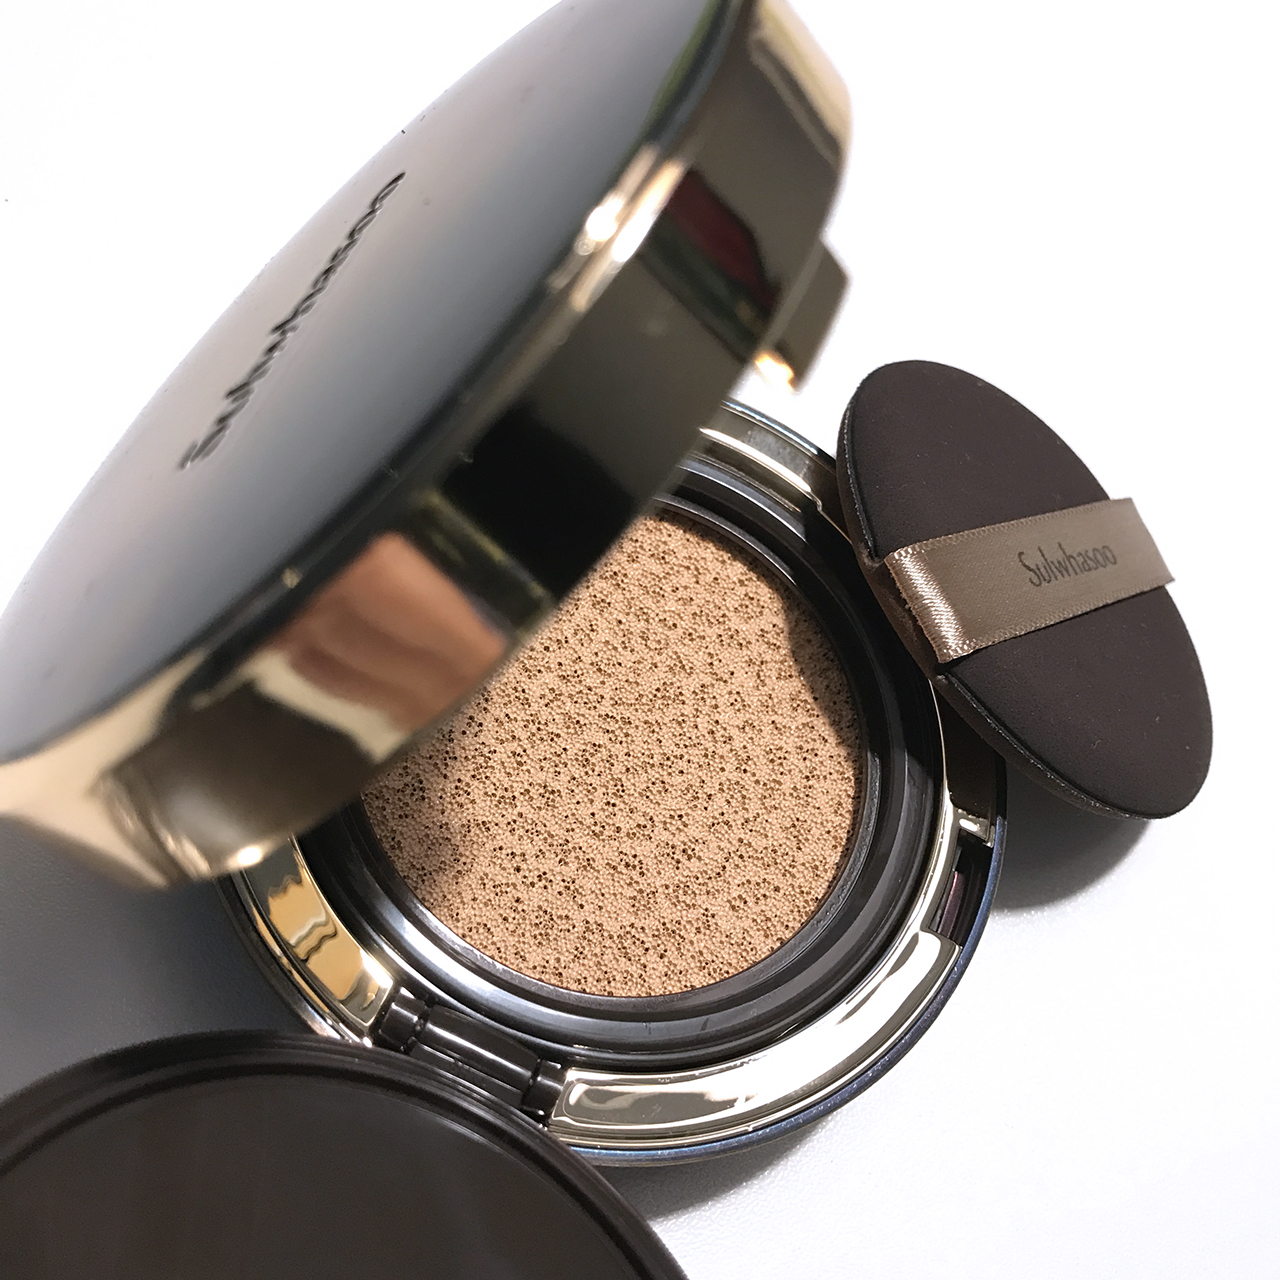 Sulwhasoo Perfecting Cushion Intense interior